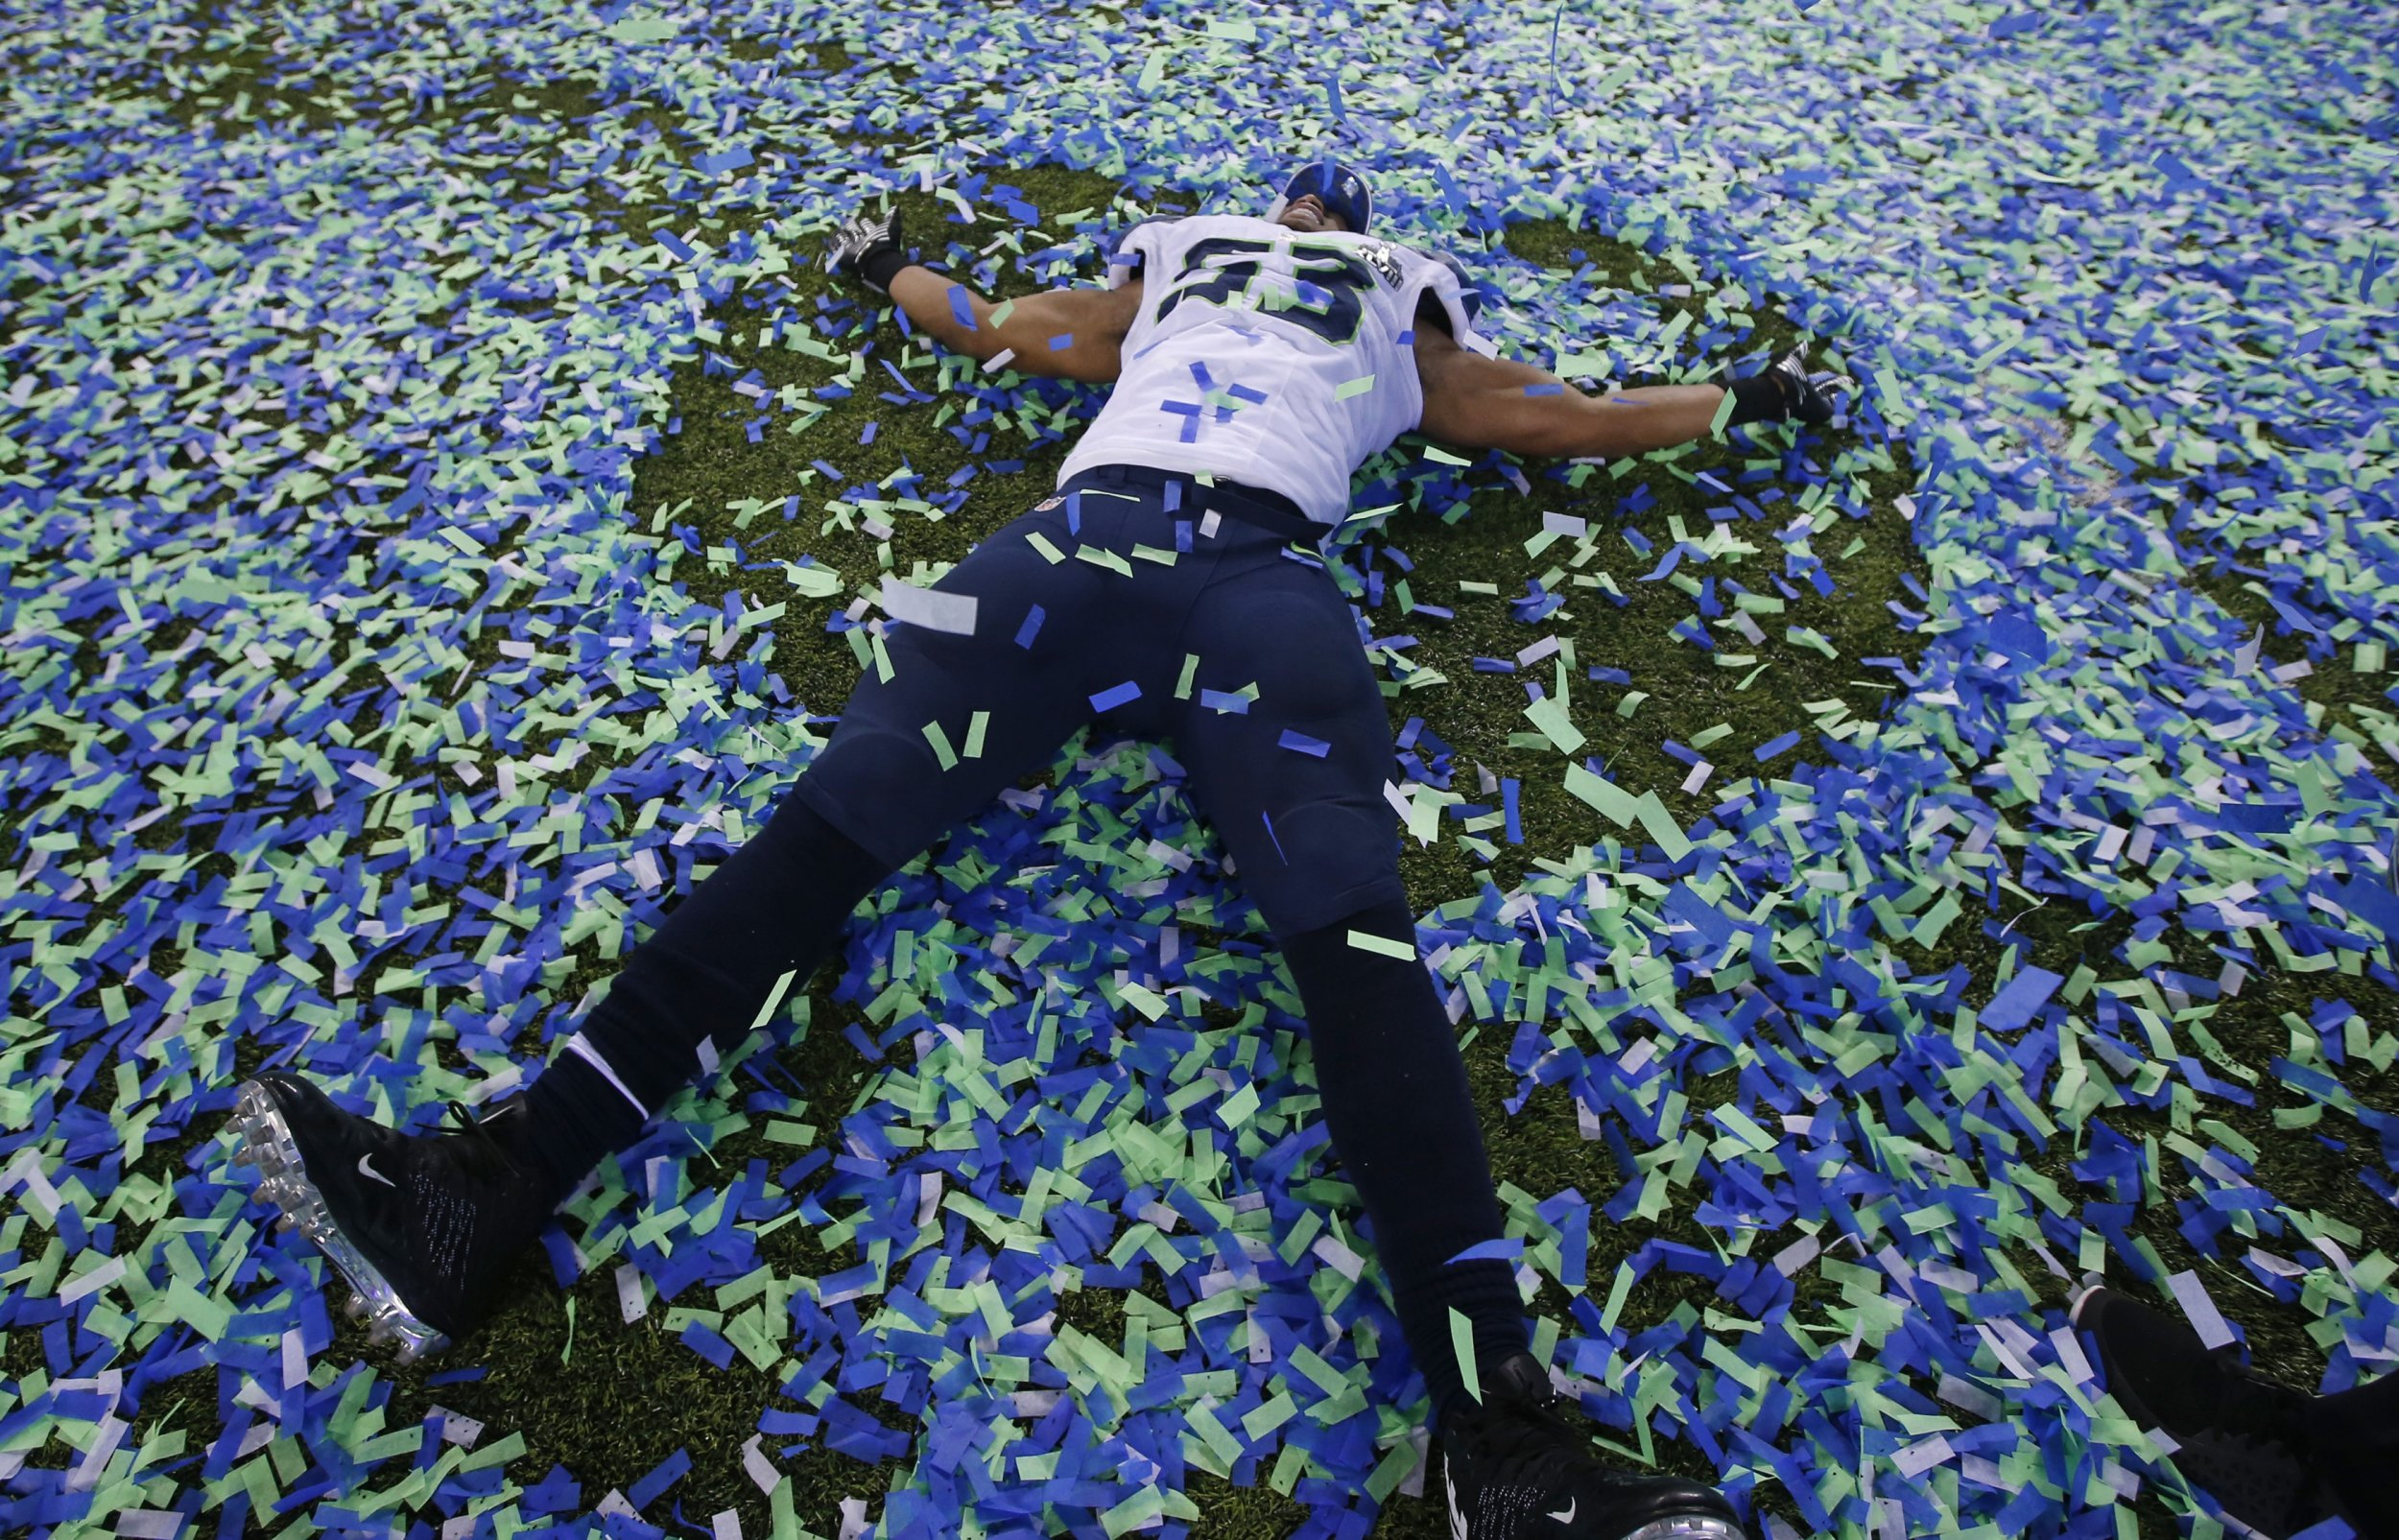 Super Bowl win for Seattle